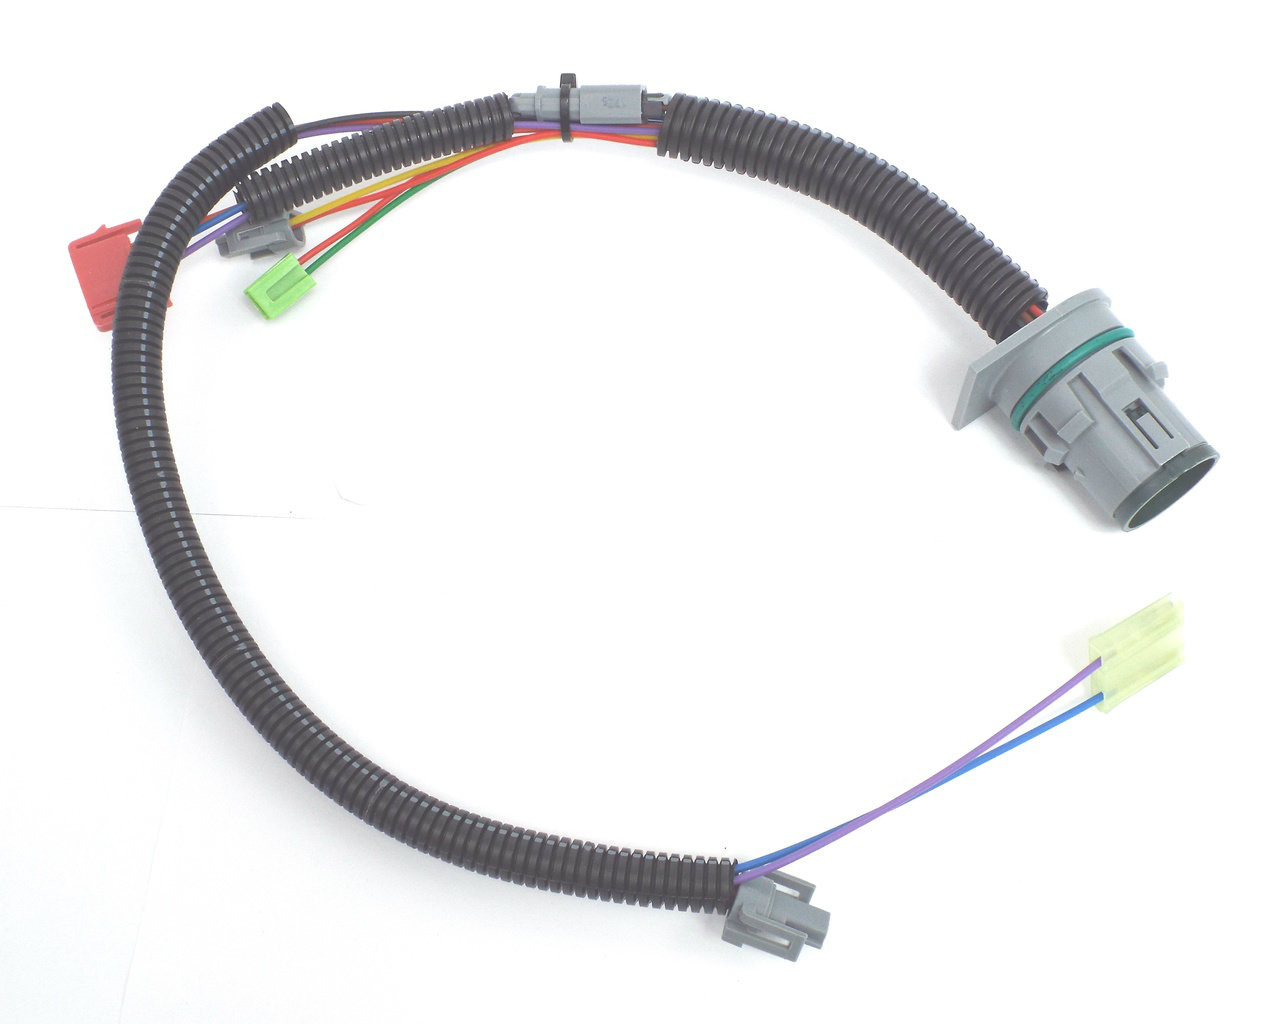 hight resolution of new 4l80e transmission hd internal valve body wiring harness 1991 2003 4l80e wiring harness